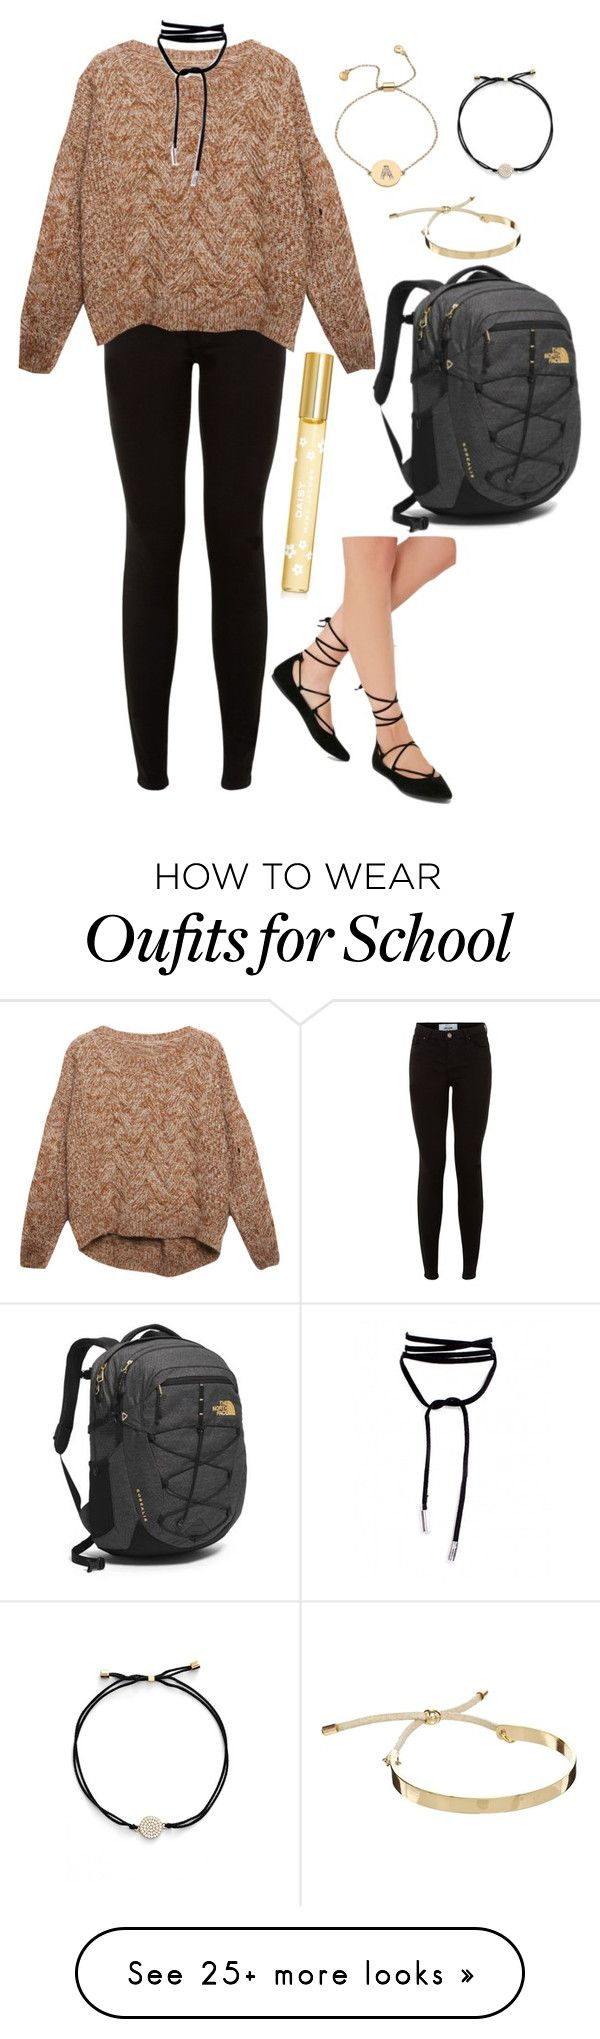 """back to school outfit #3"" by kyleemorrison on Polyvore featuring New Look, Relaxfeel, Steve Madden, The North Face, Marc Jacobs, Pieces, Nadri and Blu Bijoux"